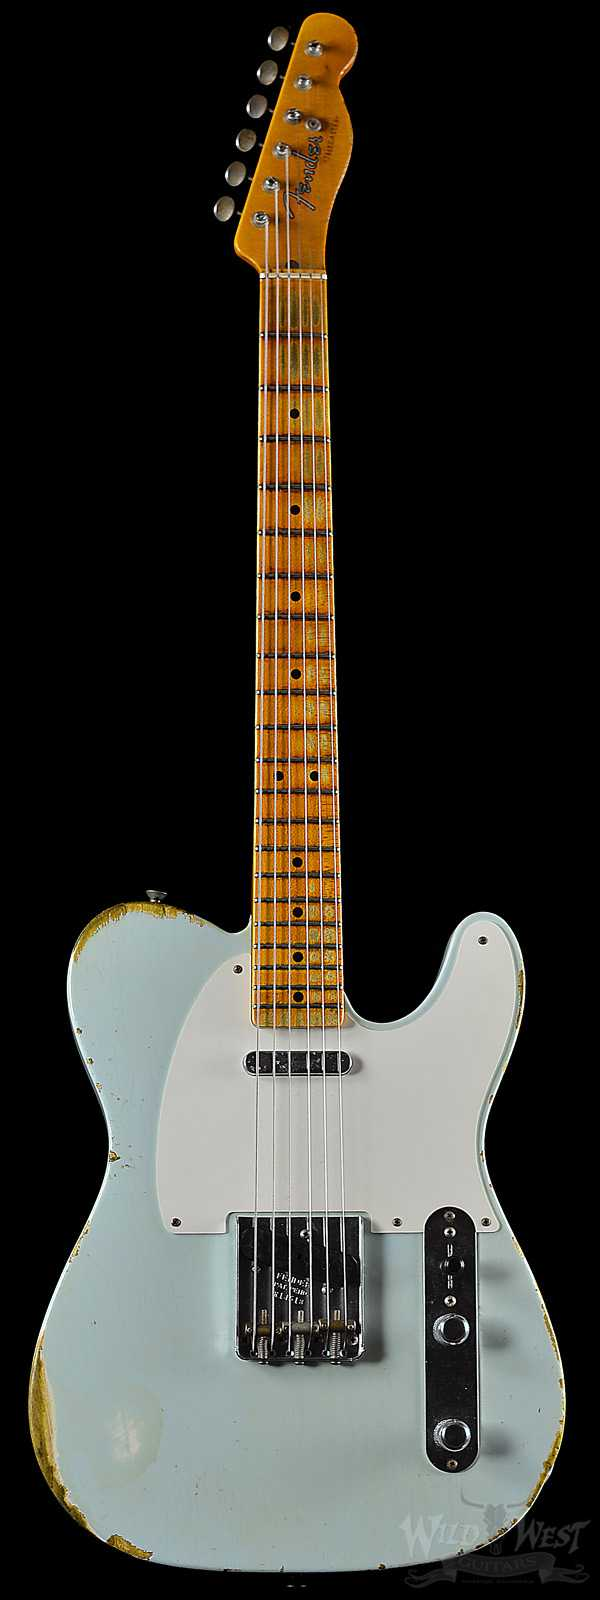 Fender 1952 Telecaster Heavy Relic Faded Sonic Blue Streamlined U Neck